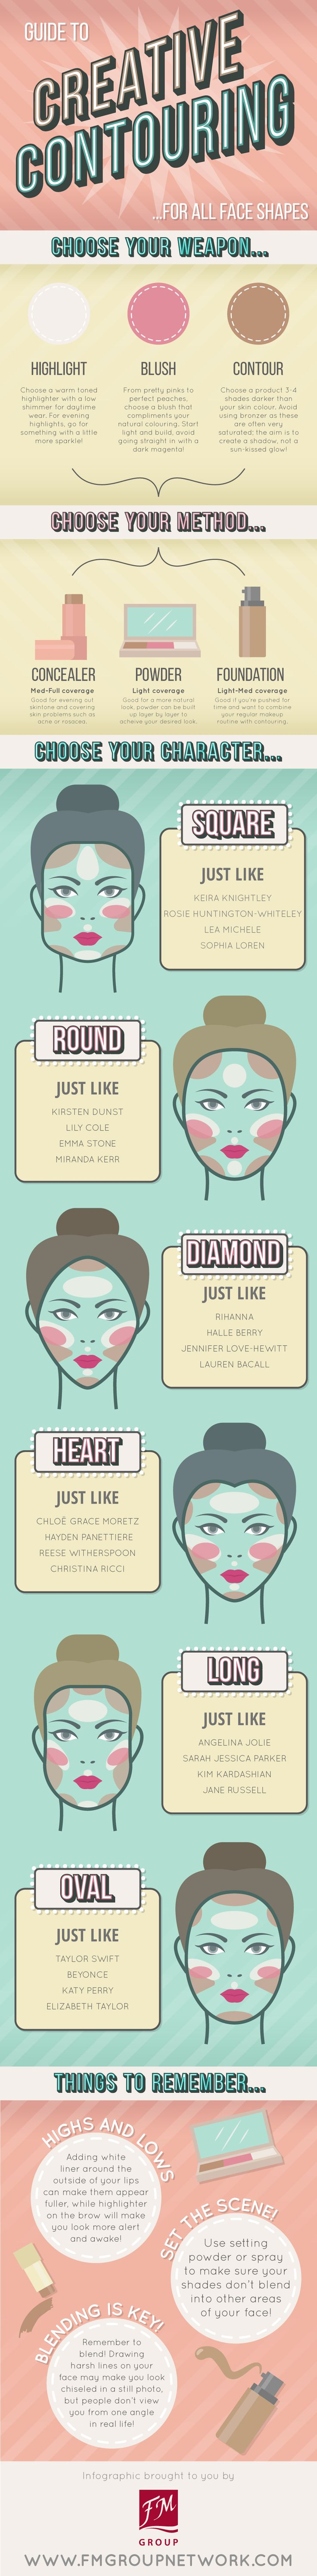 Guide to contouring based on face shape--oval, round, heart, diamond, square and long